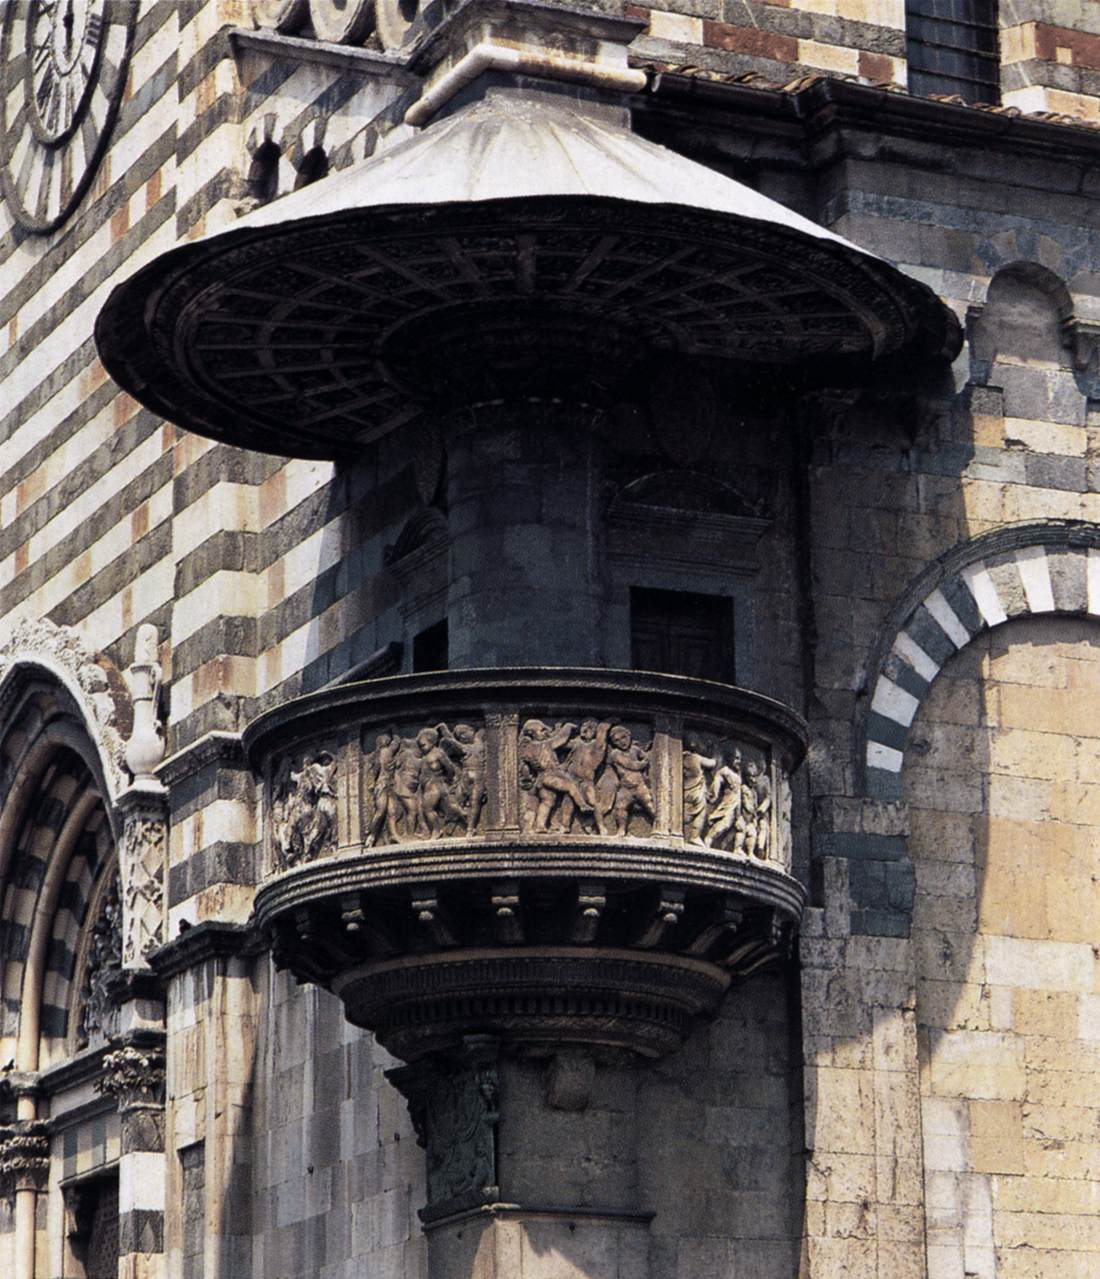 The Pulpit For The Cathedral In Prato